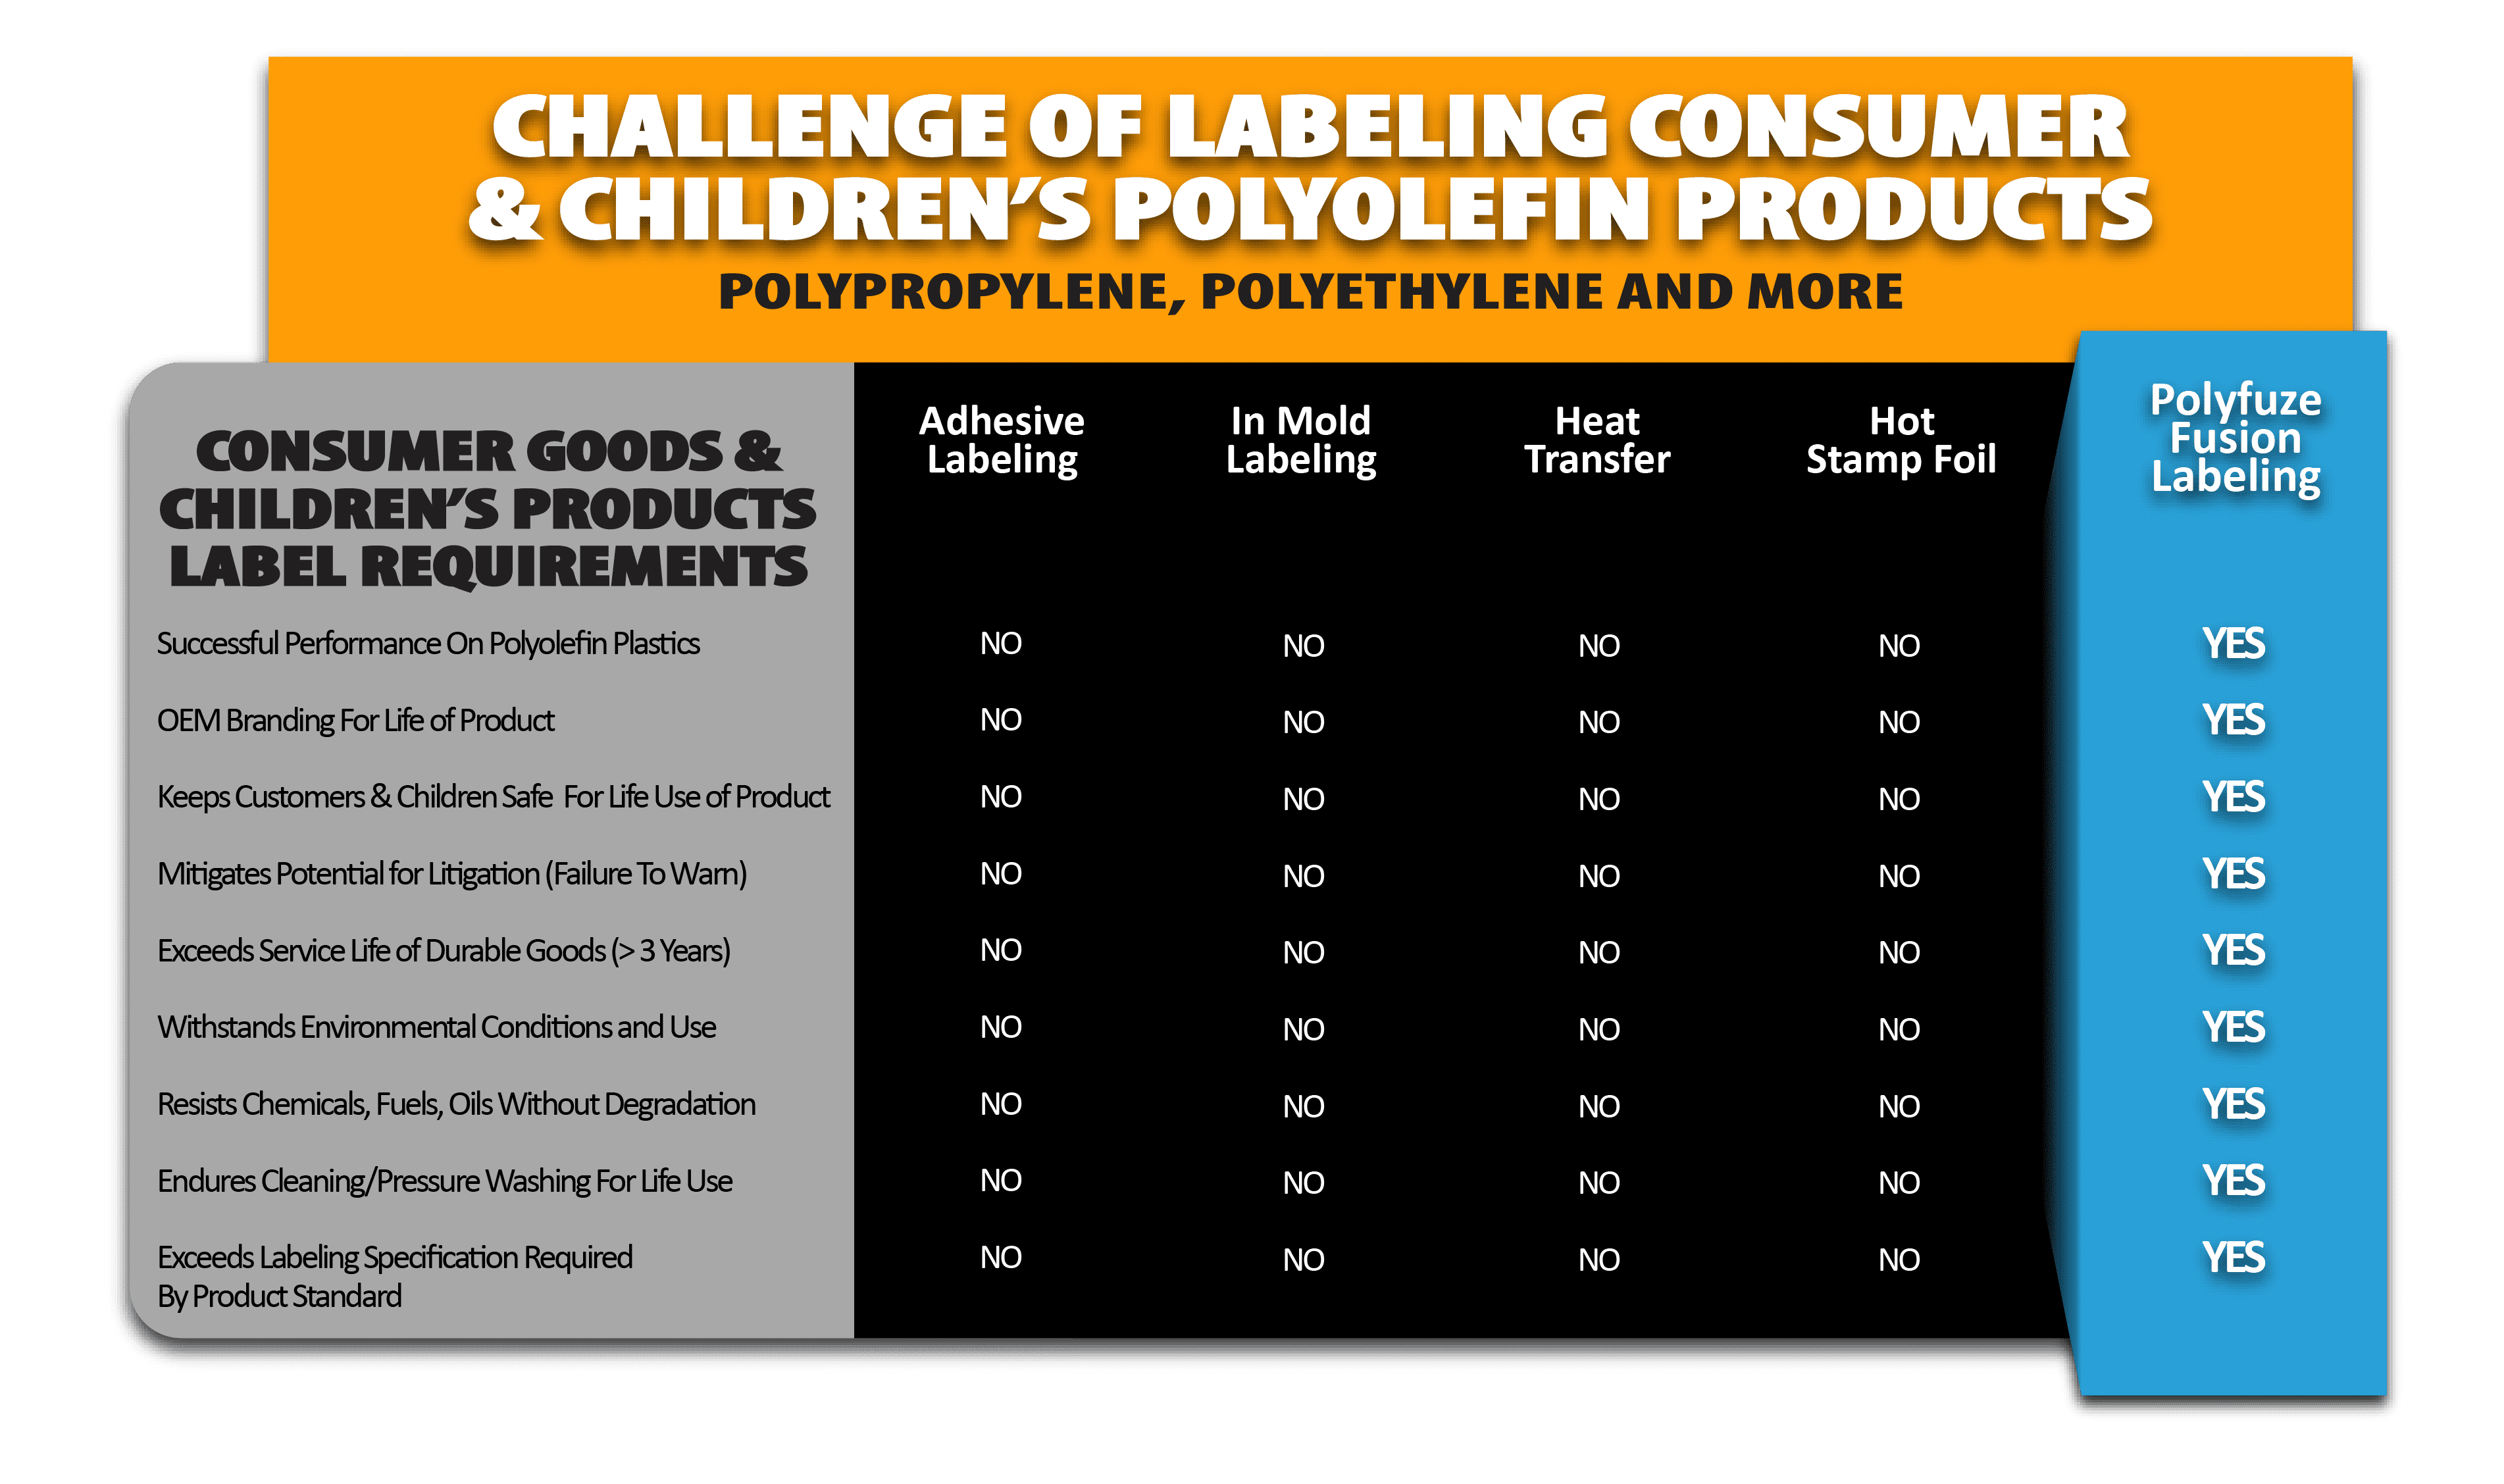 Polyfuze Fusion Labeling For Consumer Goods & Children's Products​